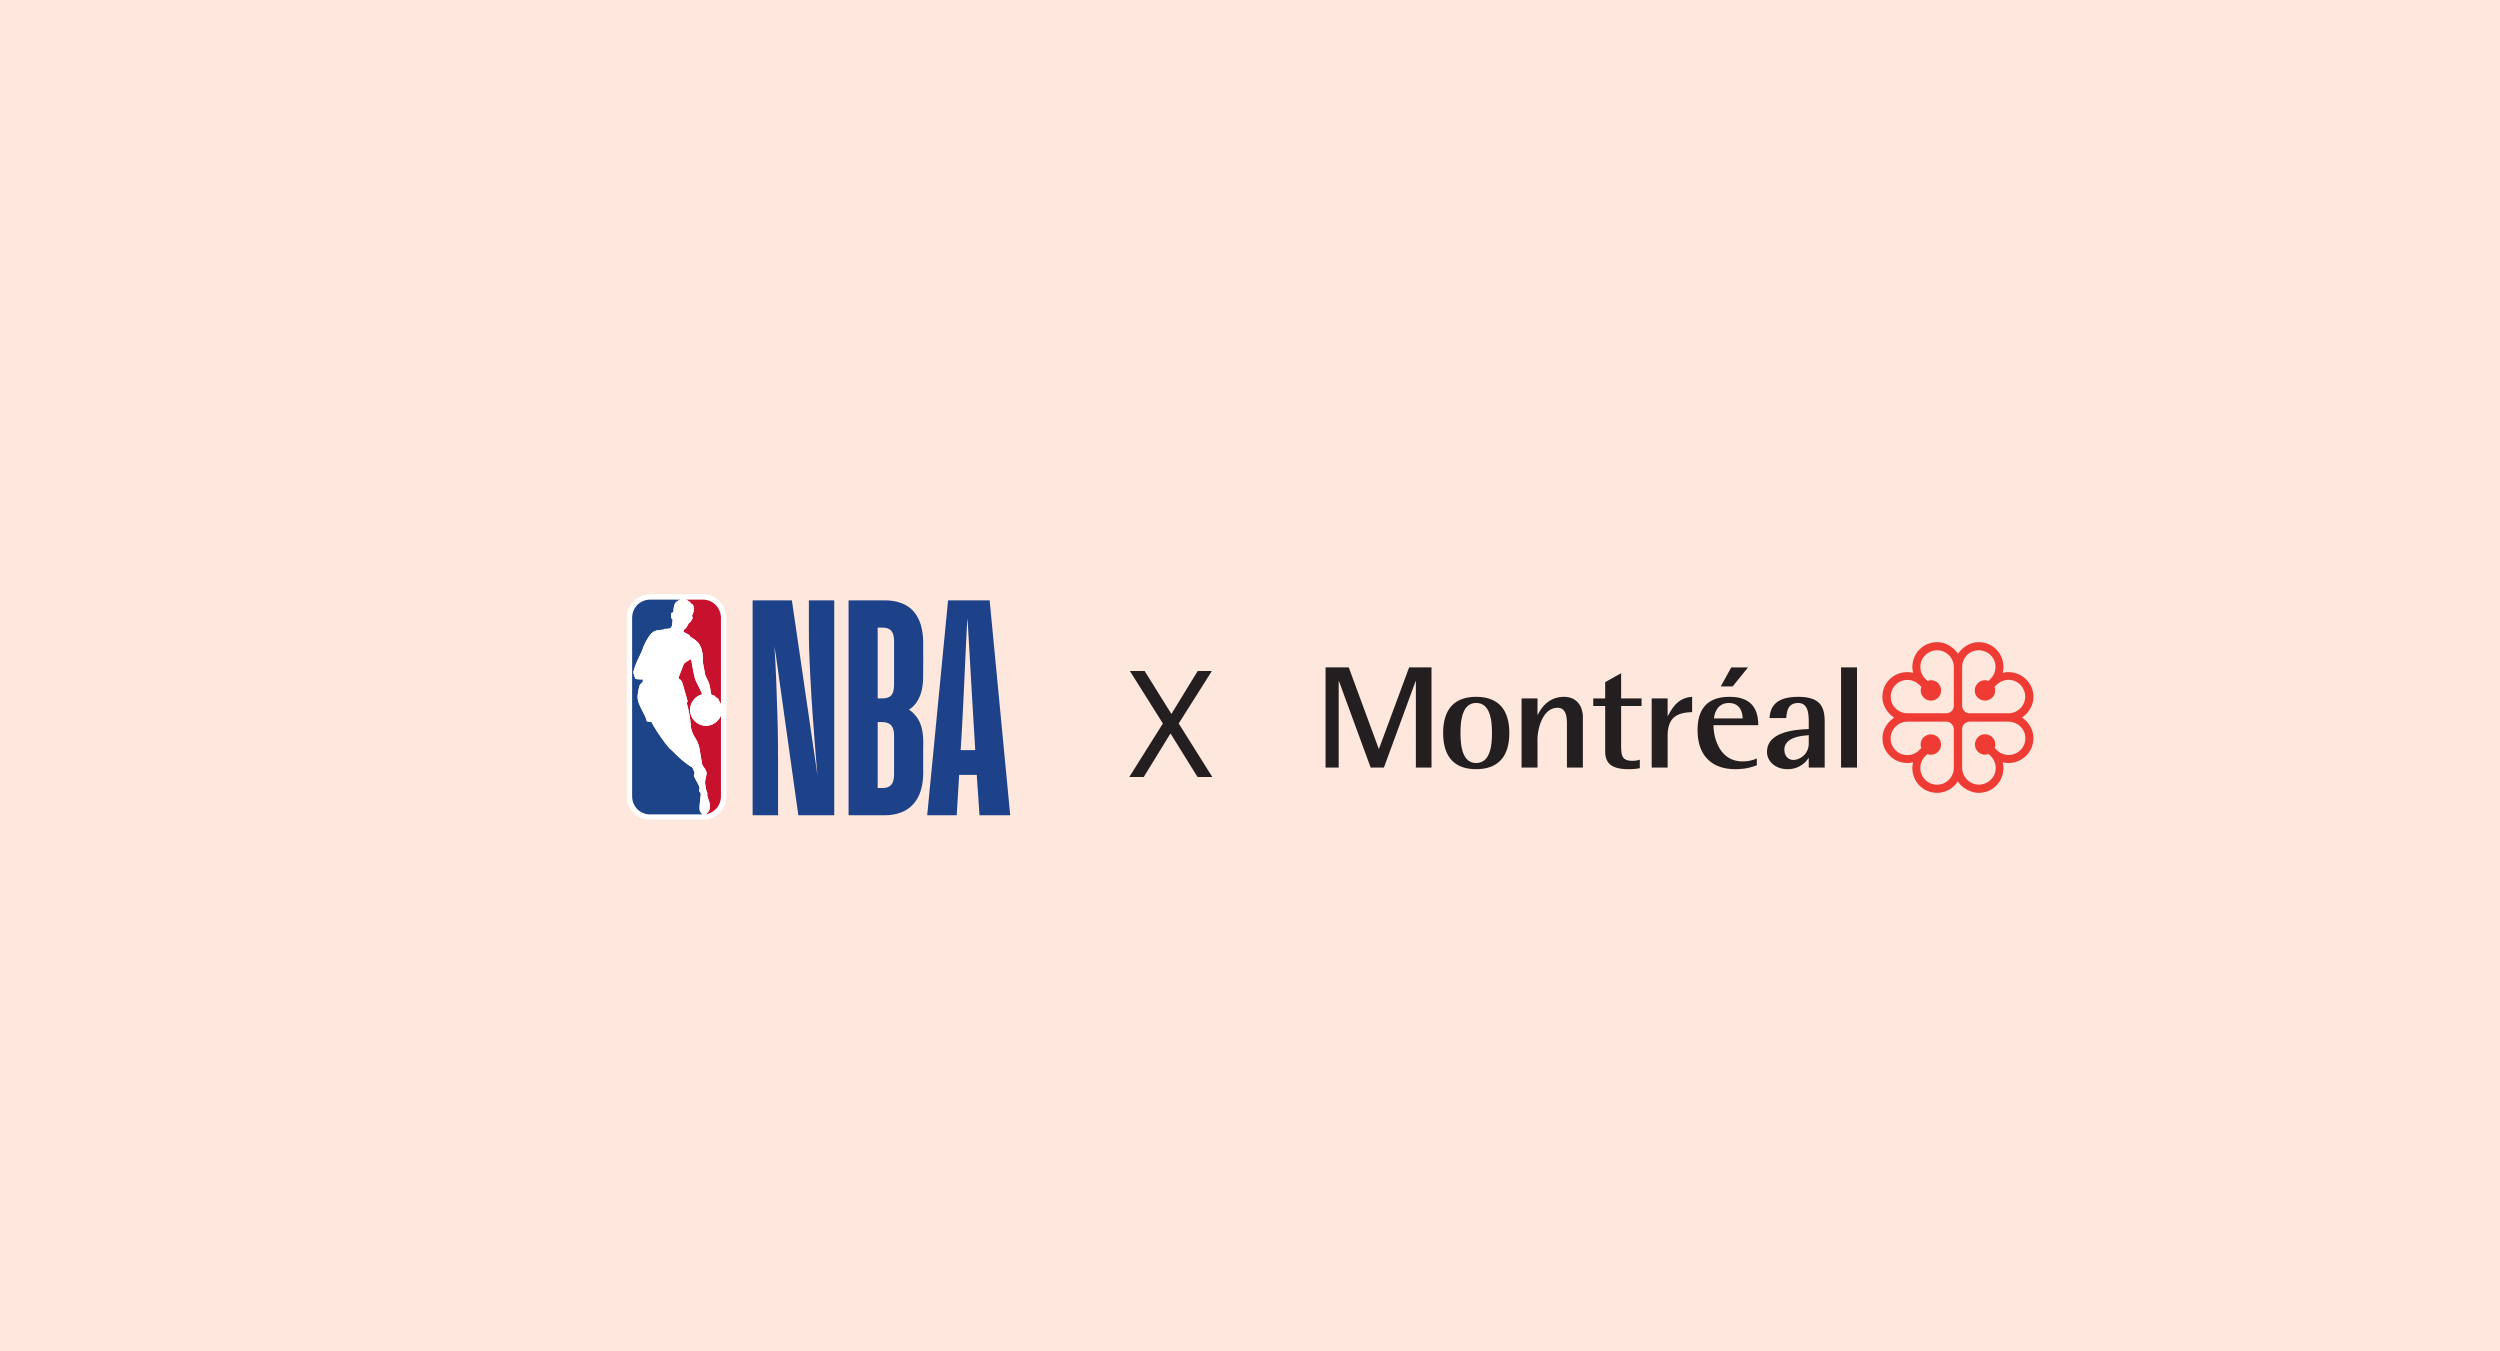 marque-finale-equipe-nba-montreal.png